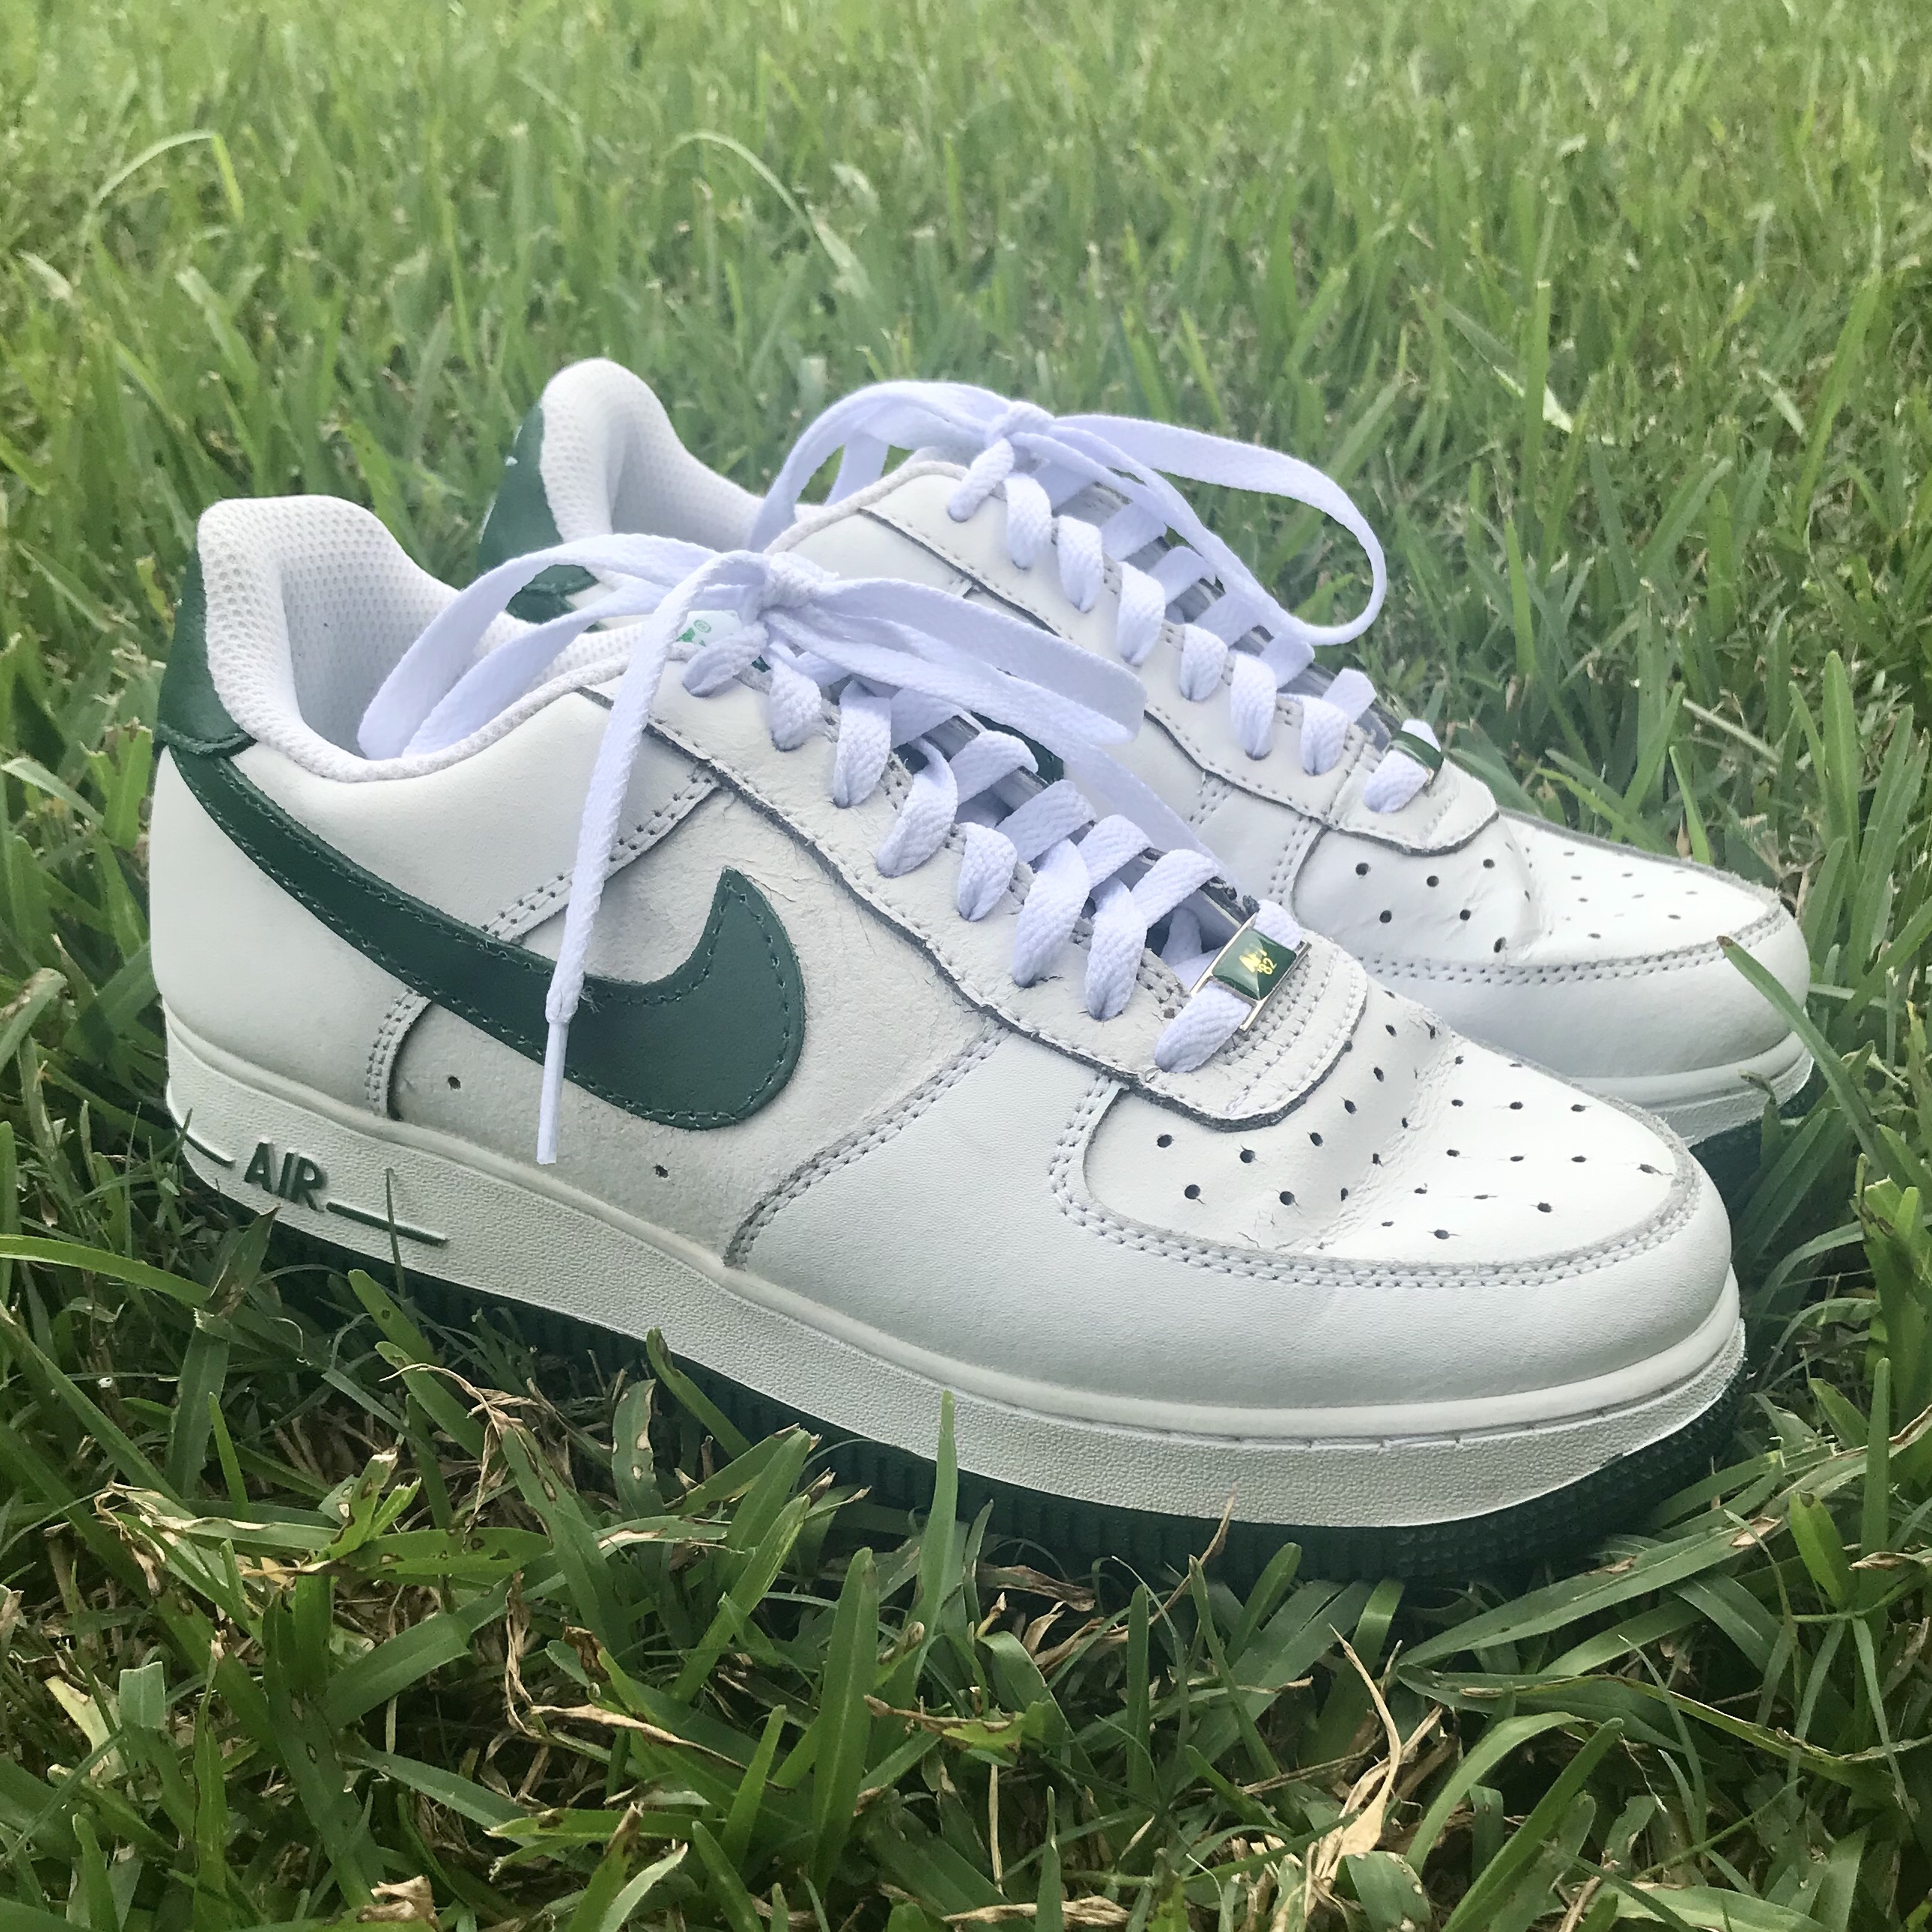 Nike Air Force 1 White/Pine Green these